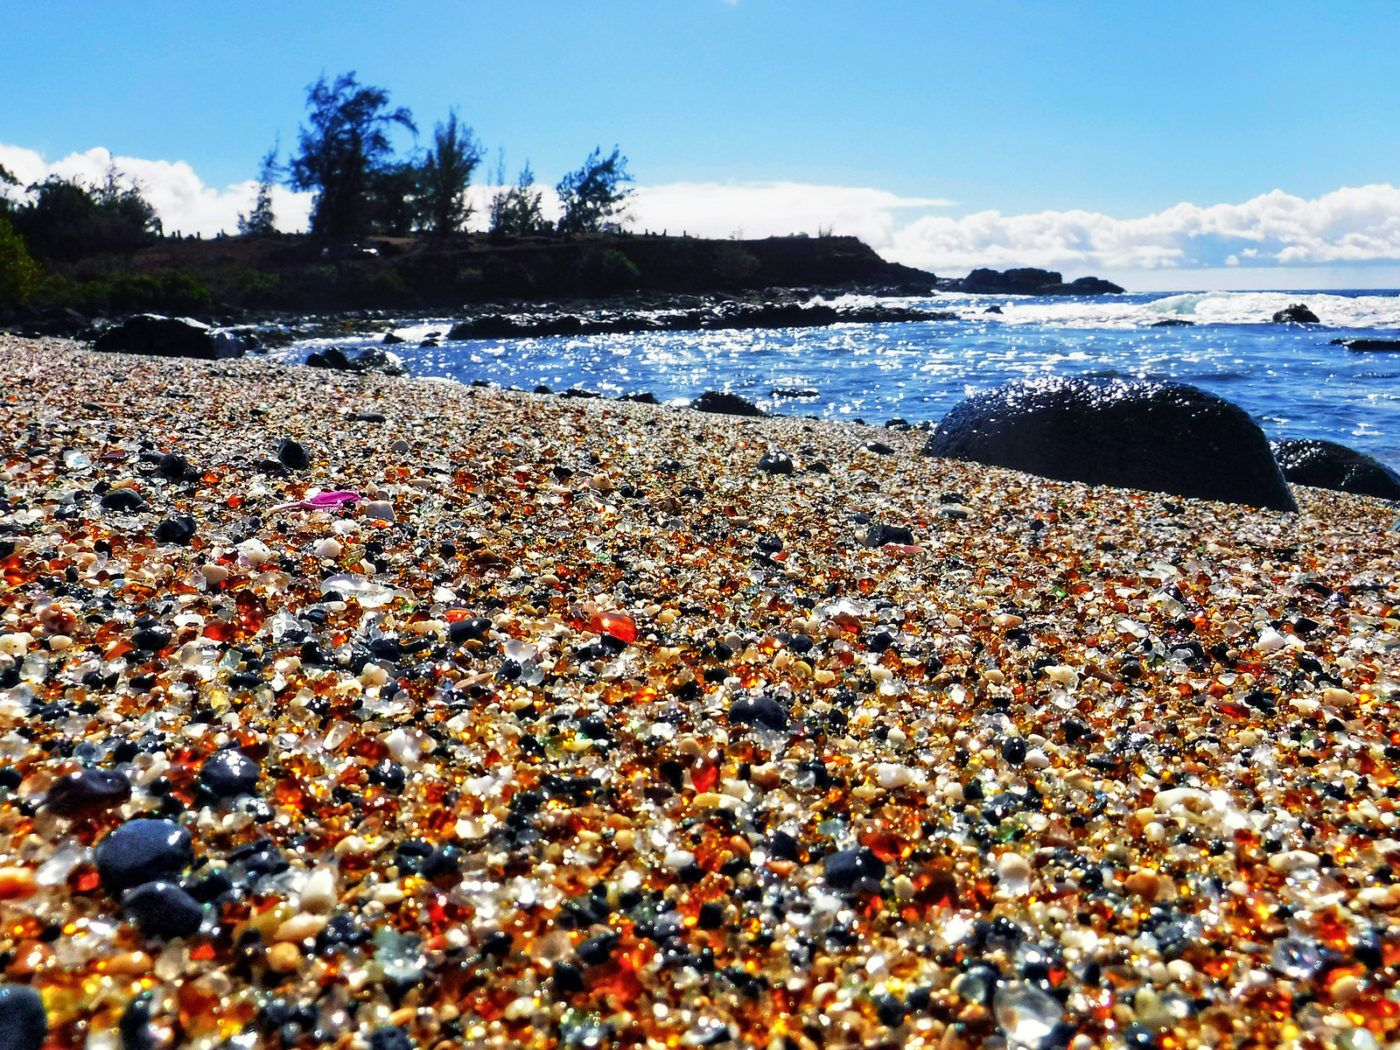 Hawaii's Glass Beach proves that one man's trash can become another man's treasure - with more than 10 years and the powerful Pacific Ocean.